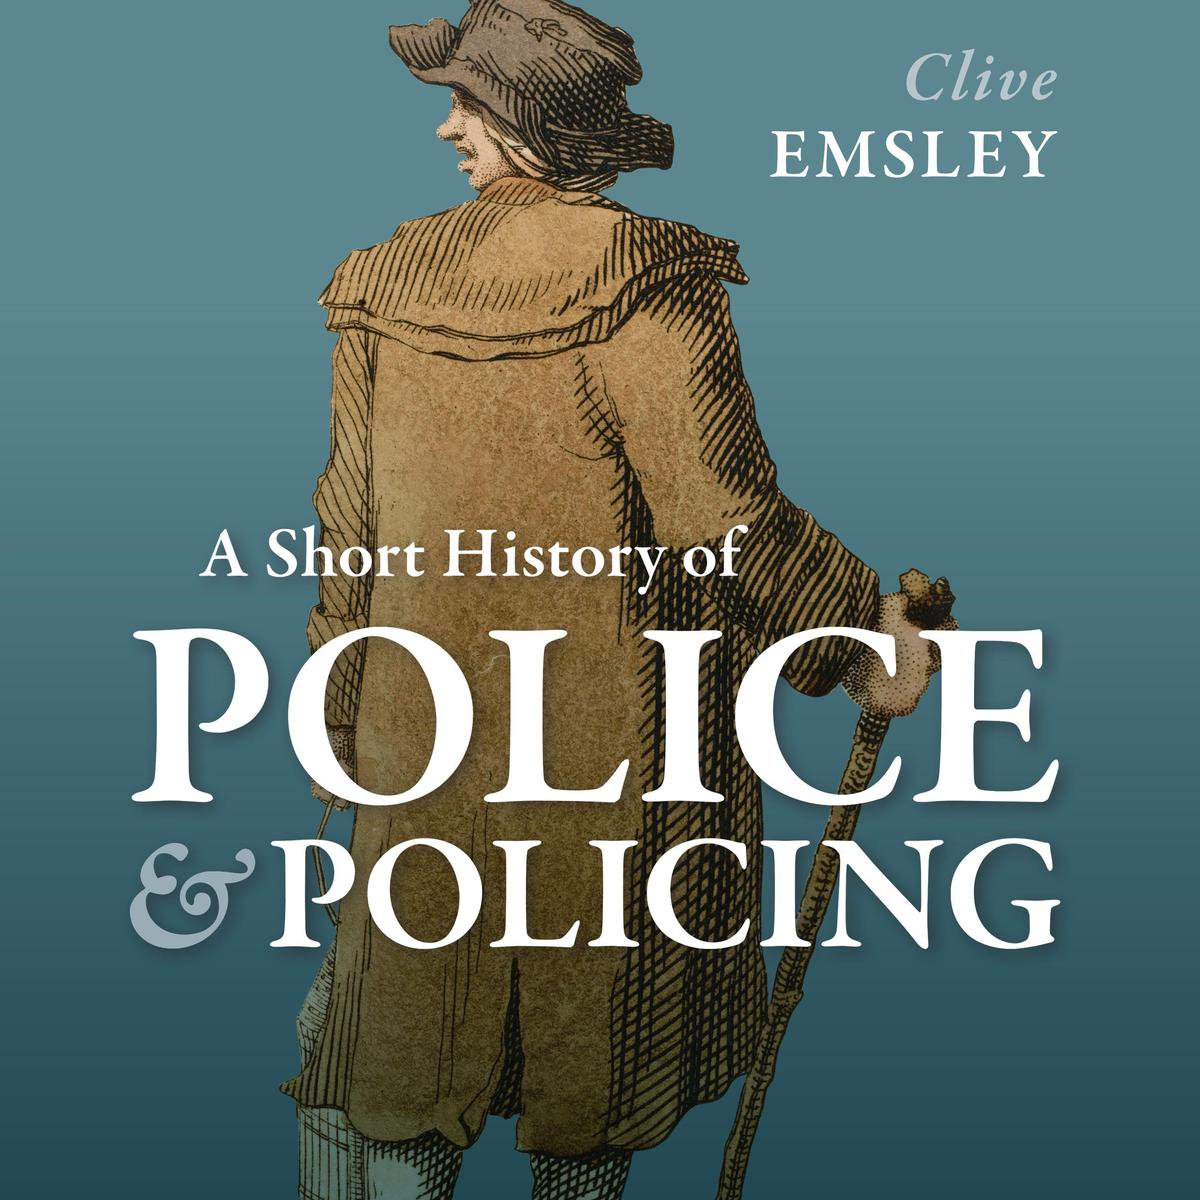 A Short History of Police and Policing